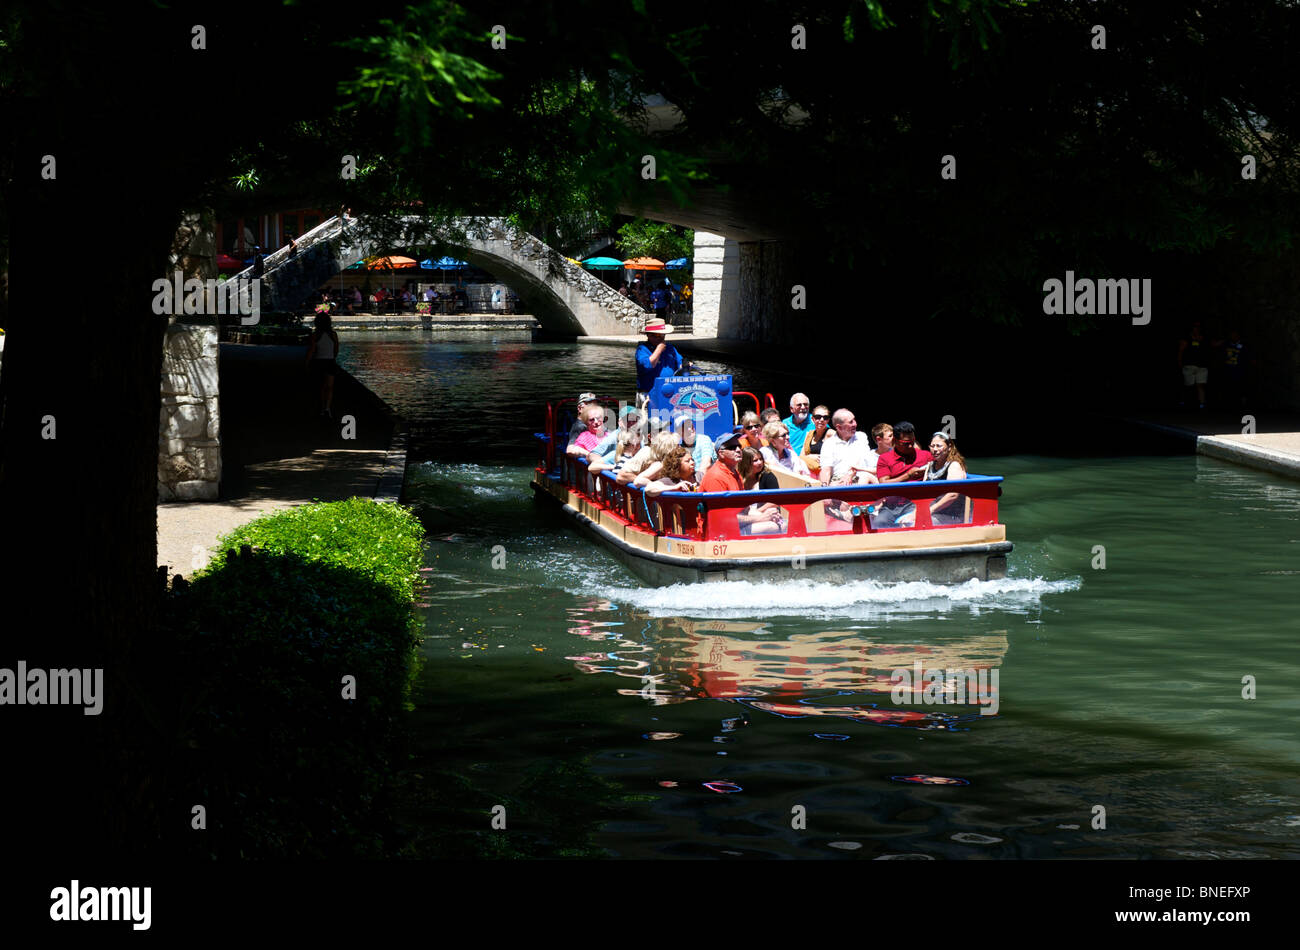 Tourist IN boat cruise sightseeing tour the River walk, San Antonio Texas - Stock Image